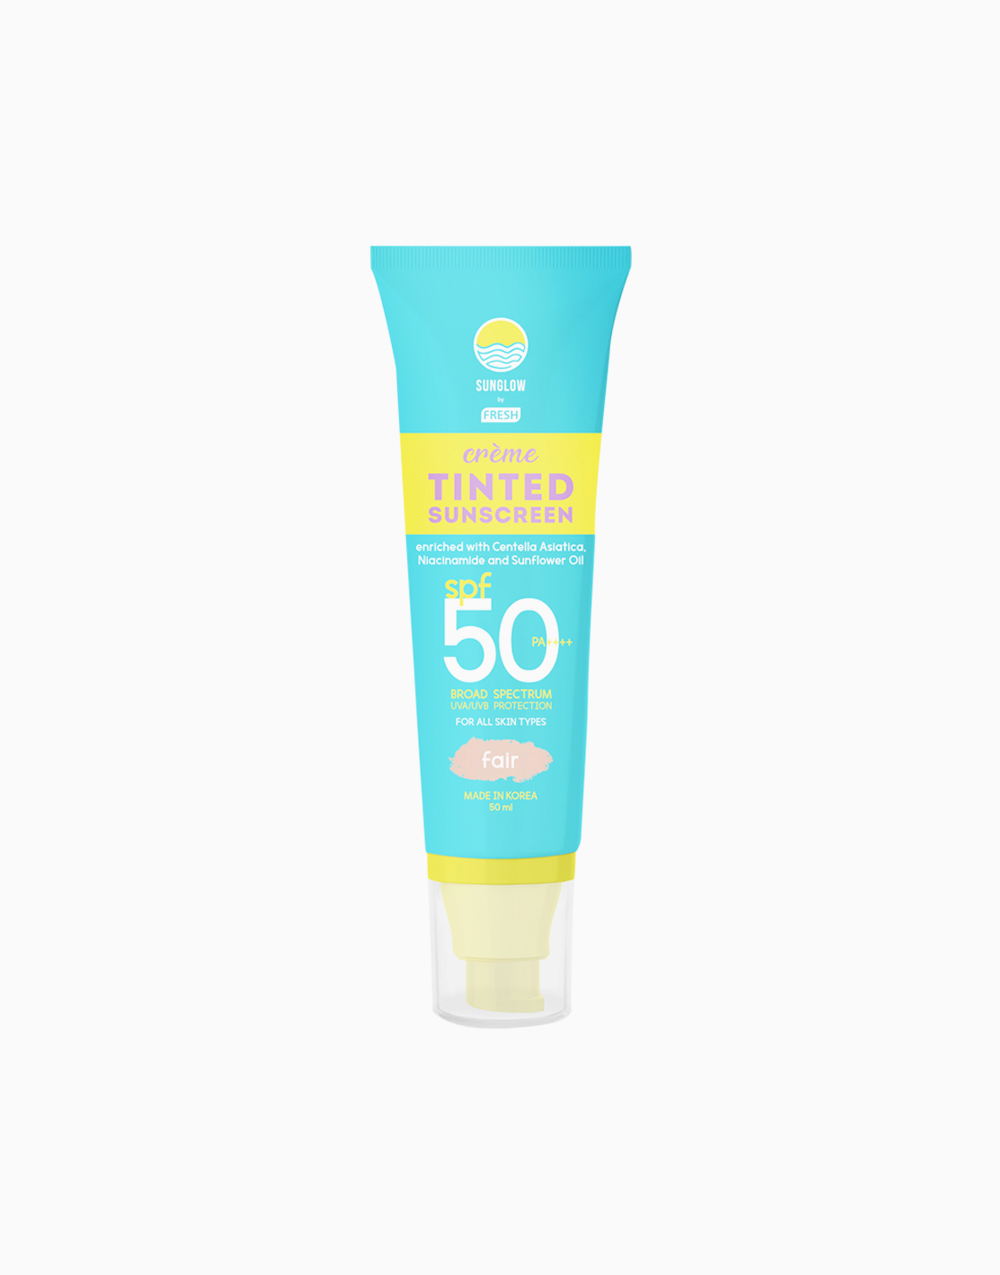 Sunglow by Fresh Tinted Sunscreen (50ml) by Fresh Philippines | Fair